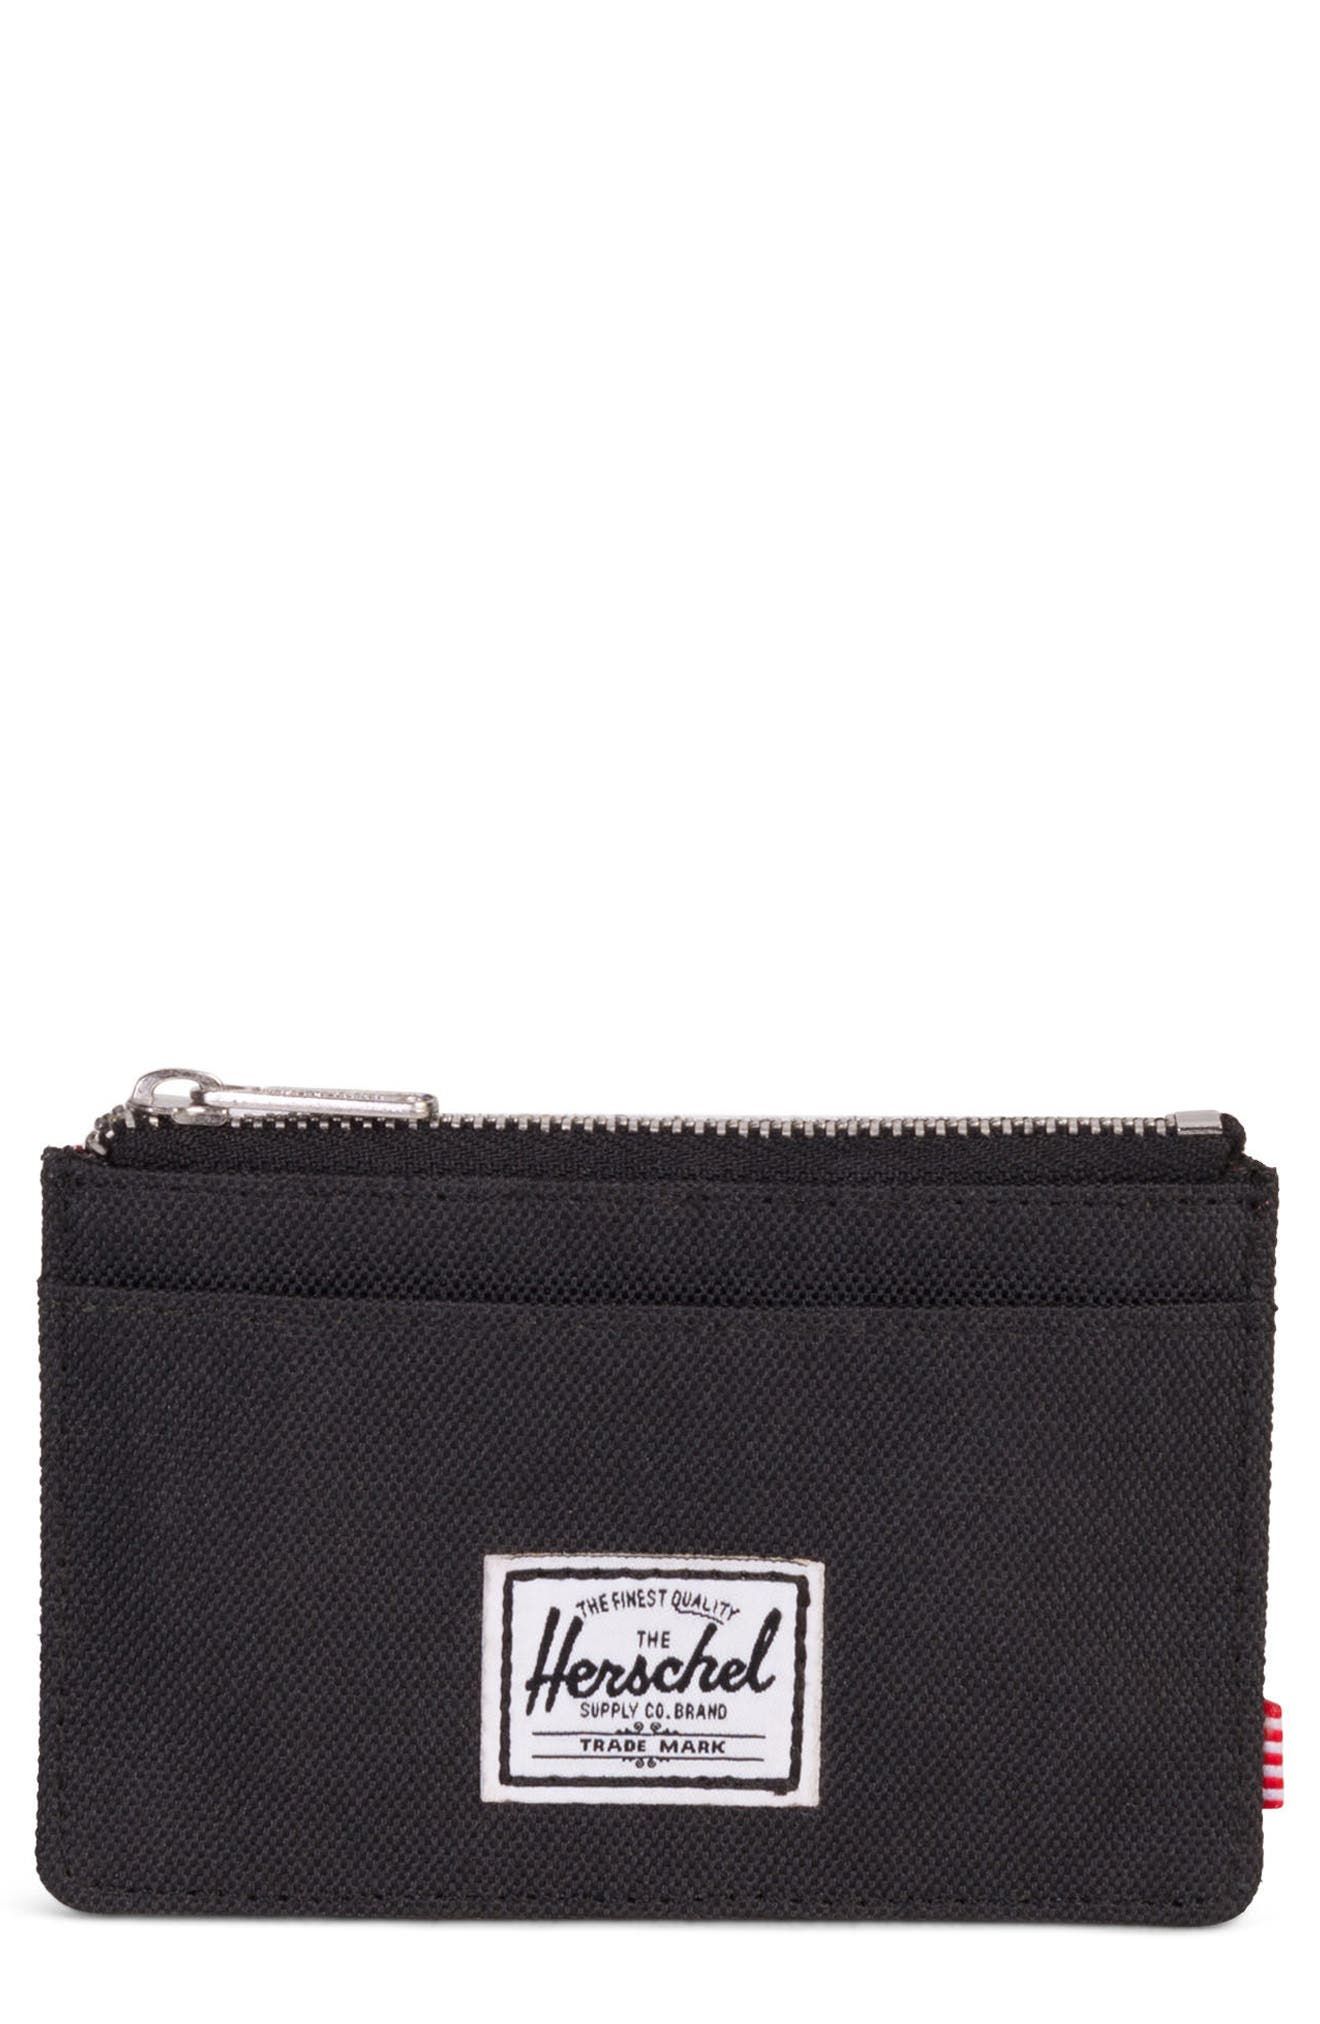 Oscar Card Case,                         Main,                         color, BLACK